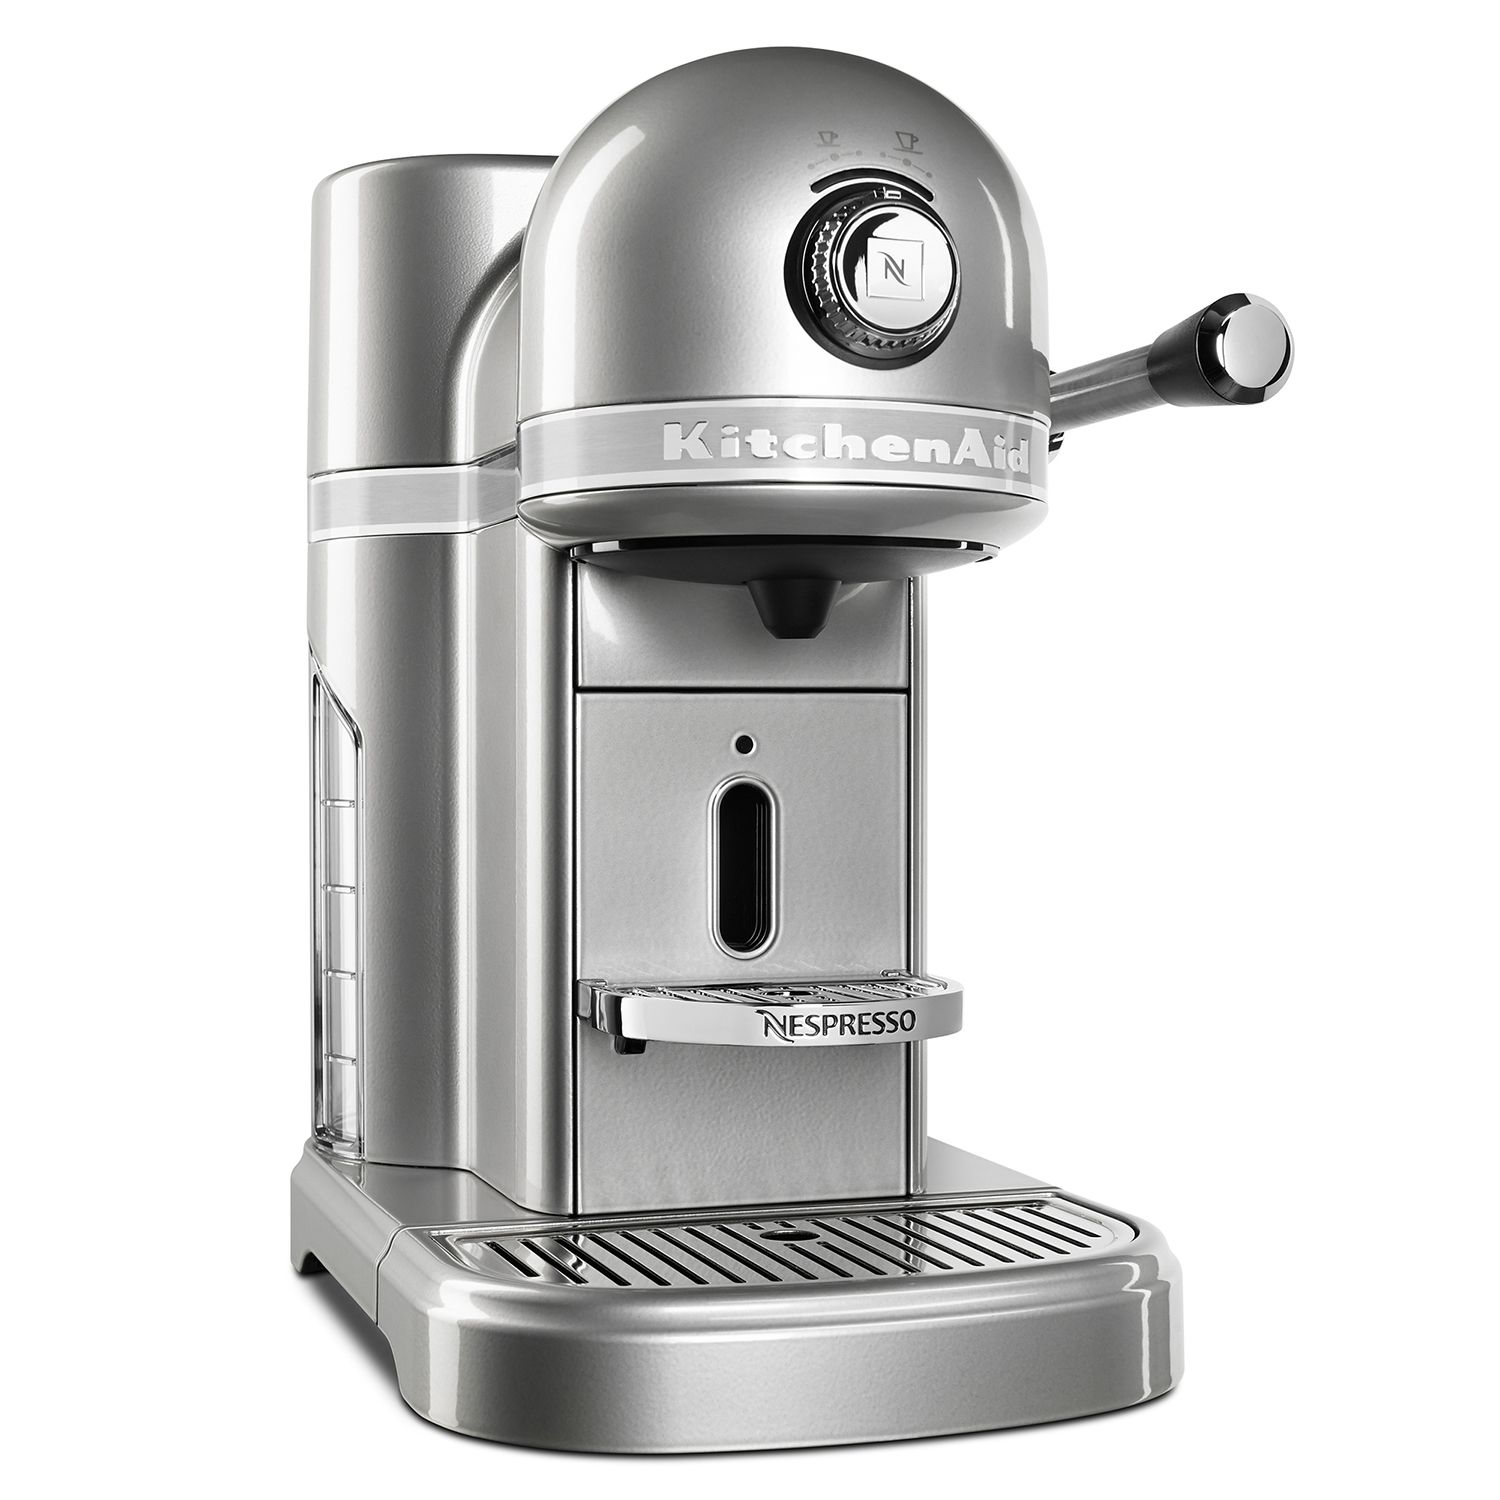 kitchenaid kes0503 nespresso espresso machine